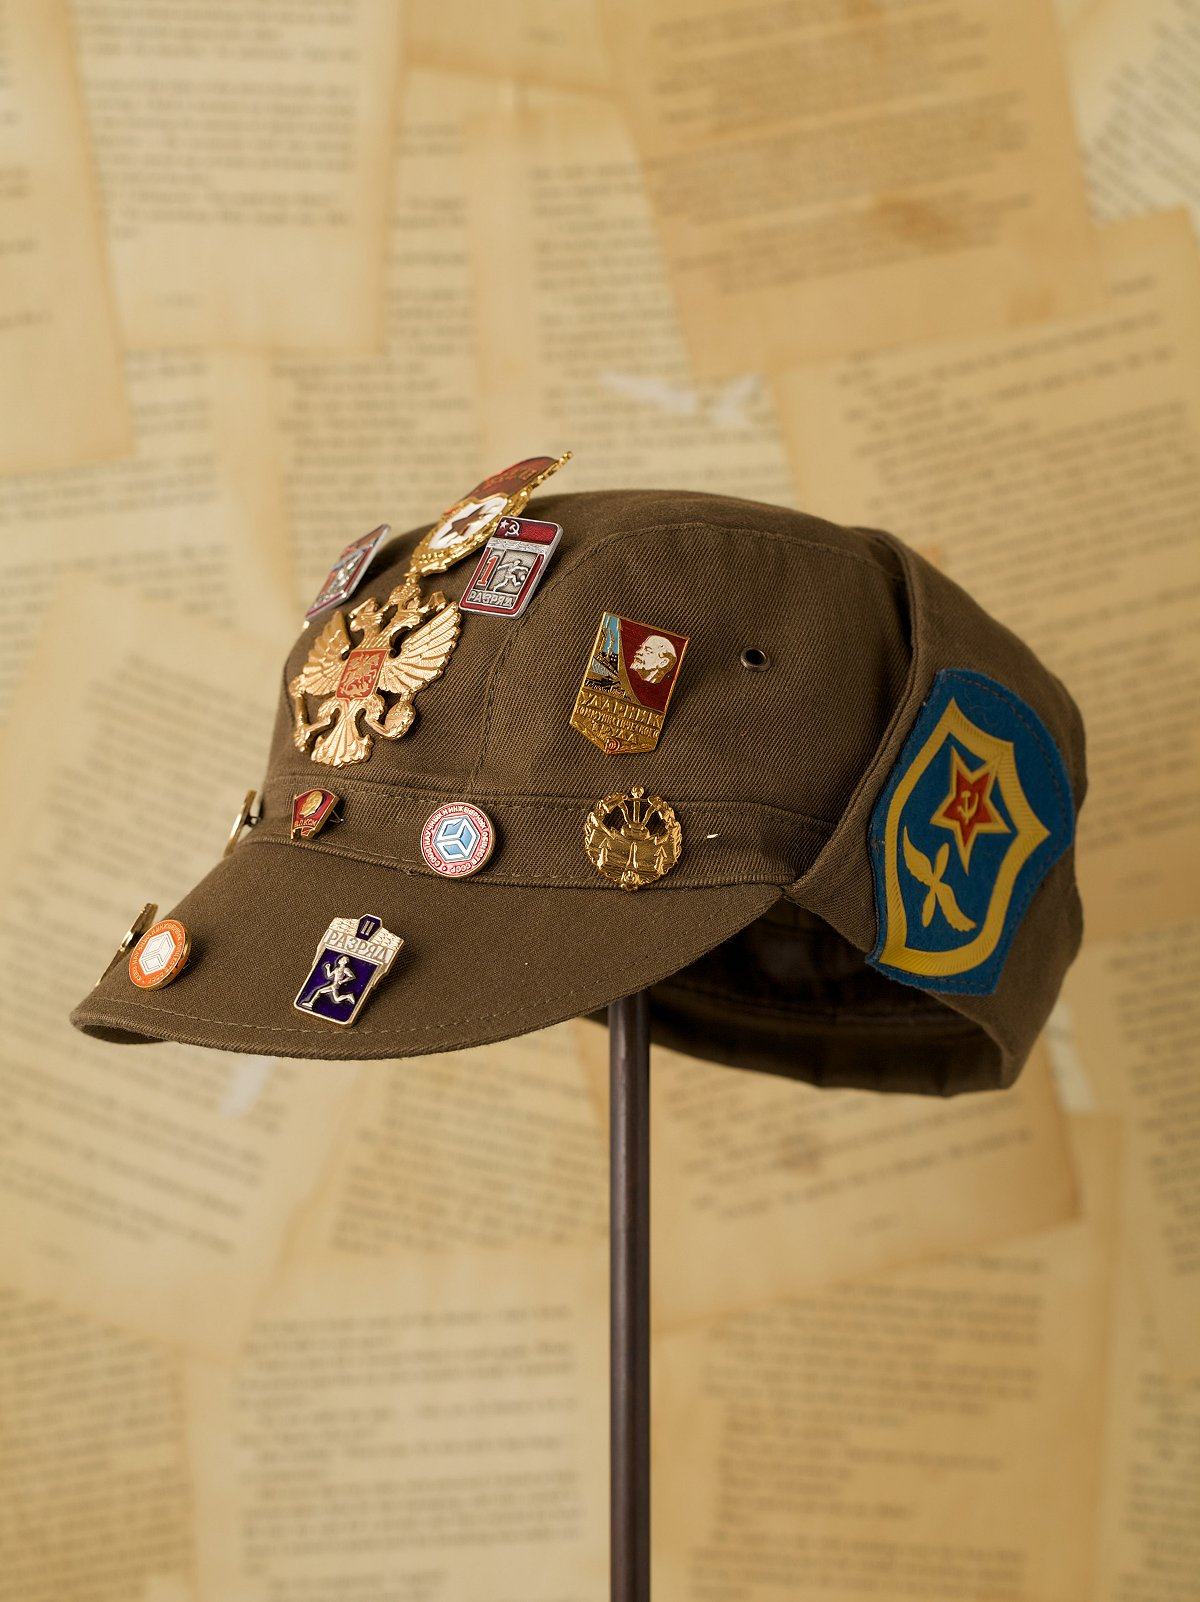 Vintage Military Hat with Pins